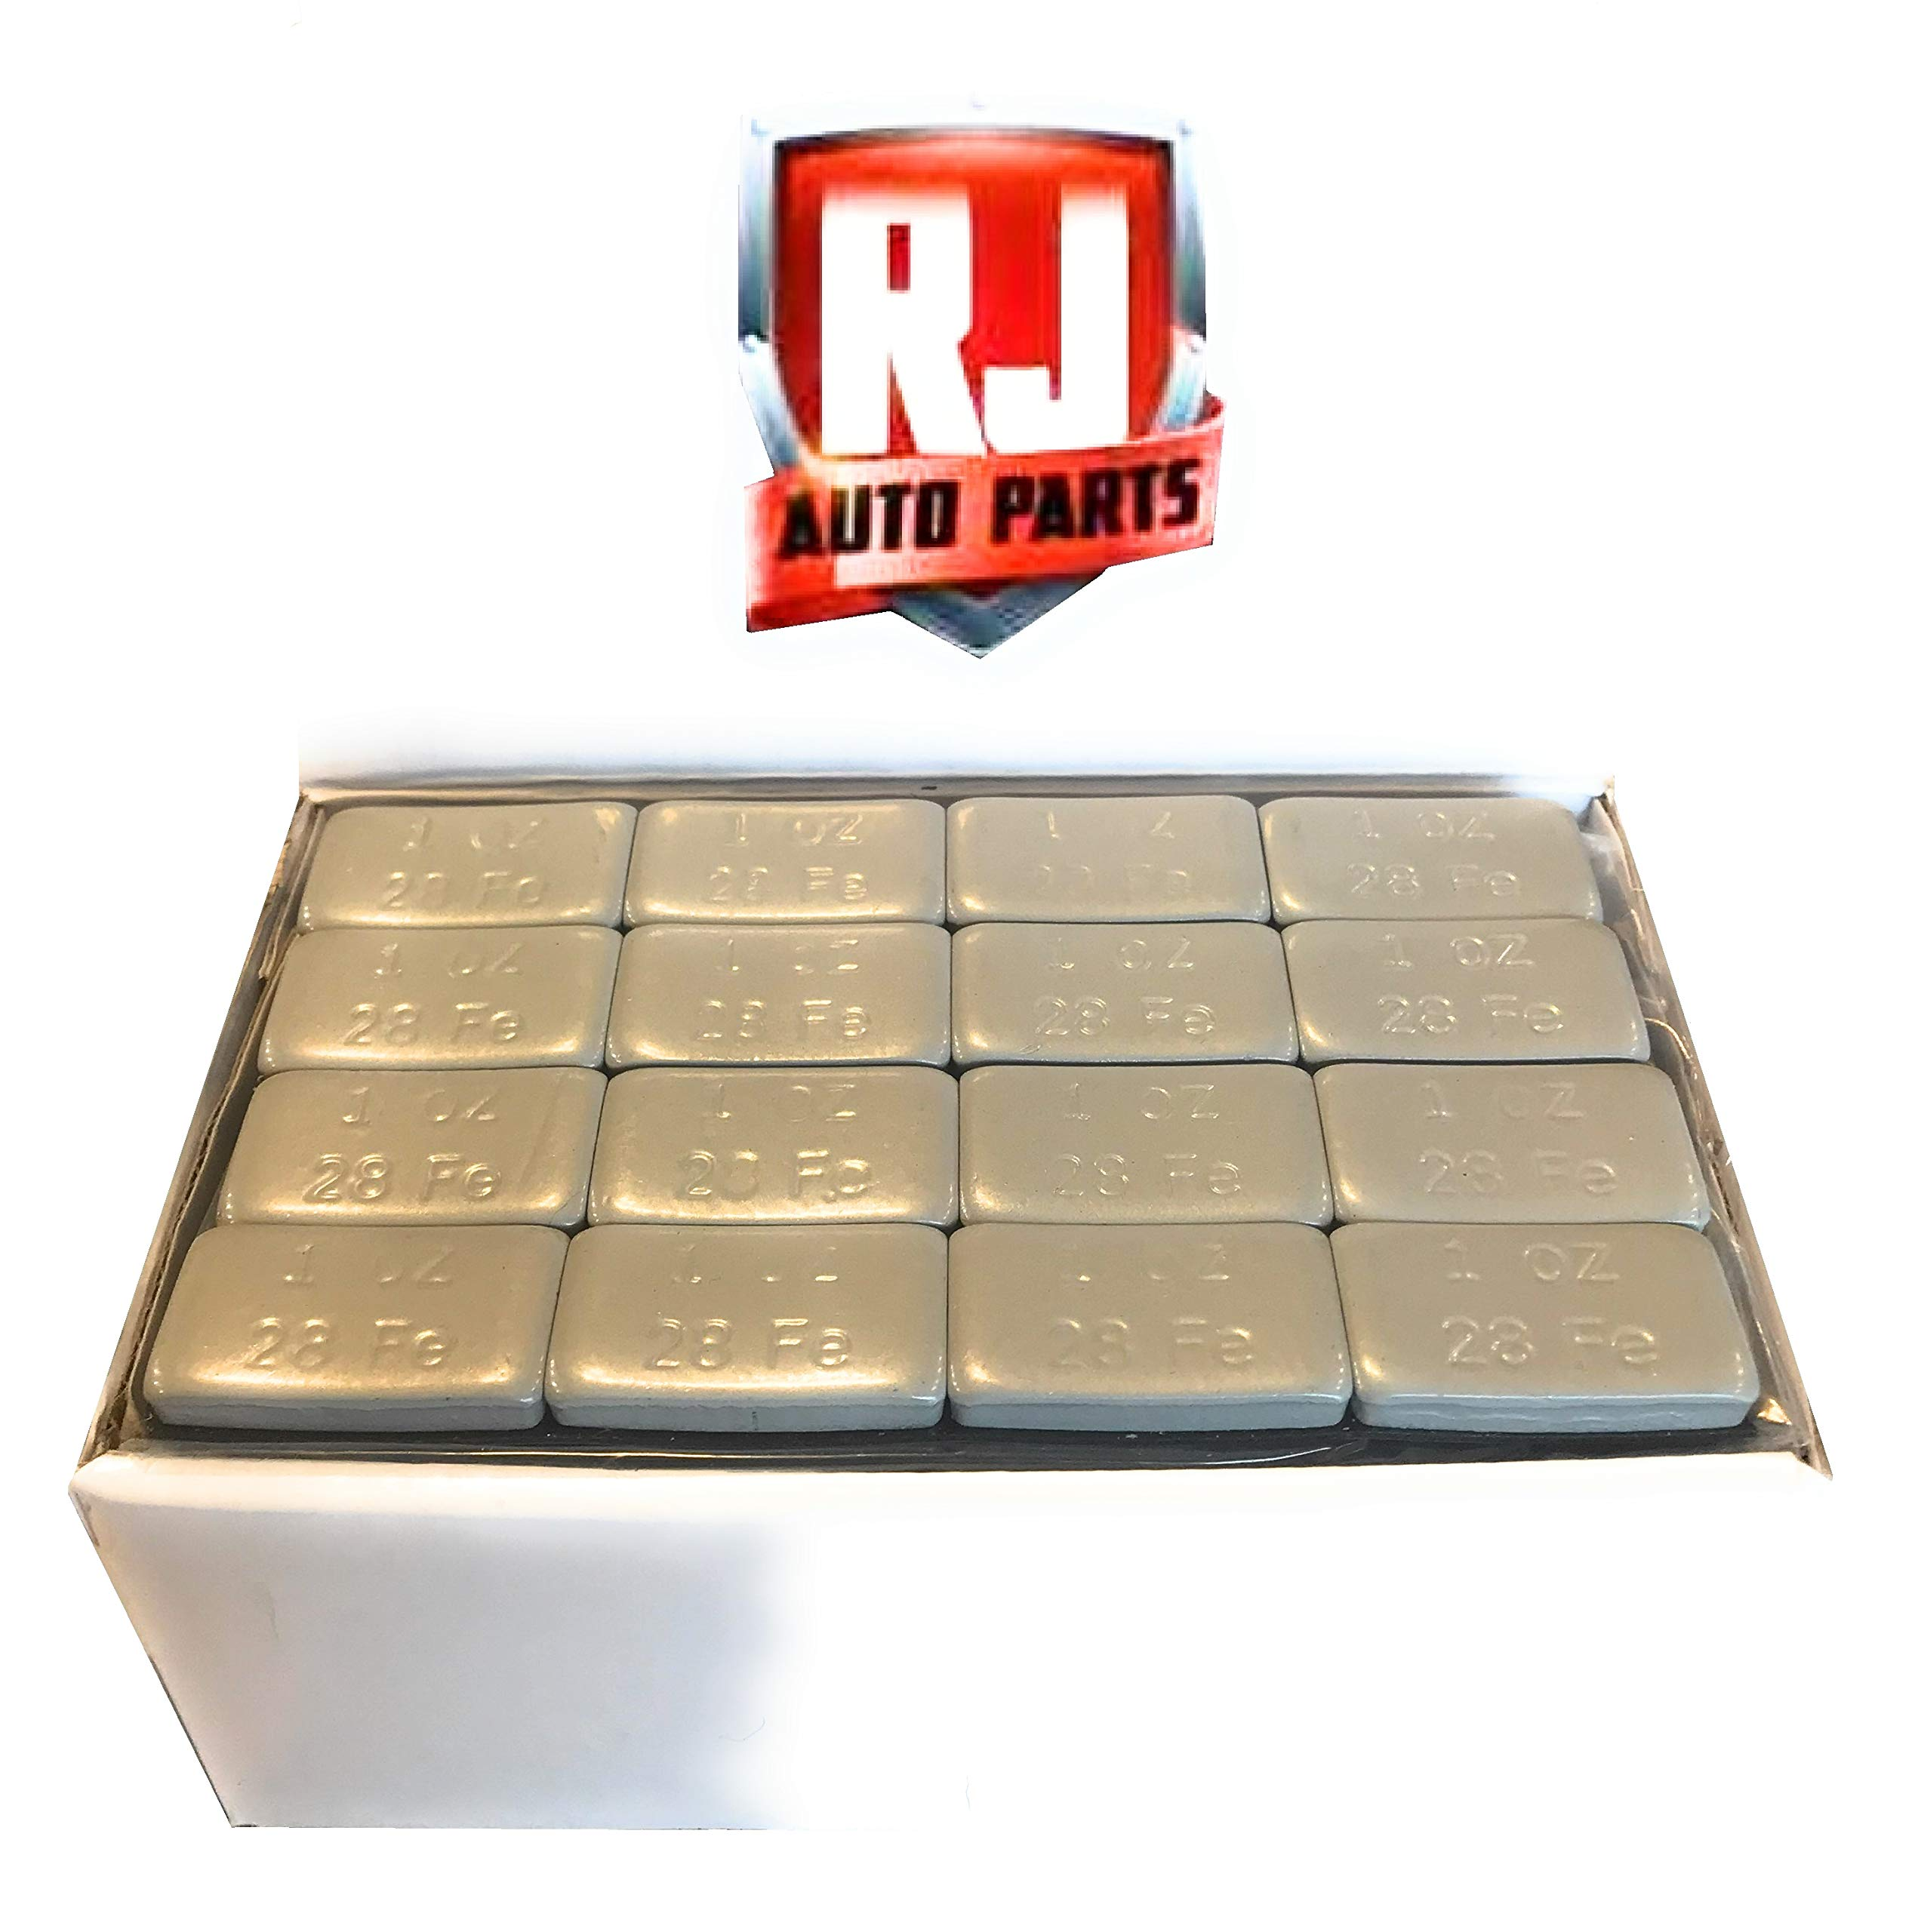 6 Boxes Wheel Weights, Grey 1 oz, Stick-on Adhesive Tape, Lead Free (54 lbs) 864 Pieces by RJ Auto Parts